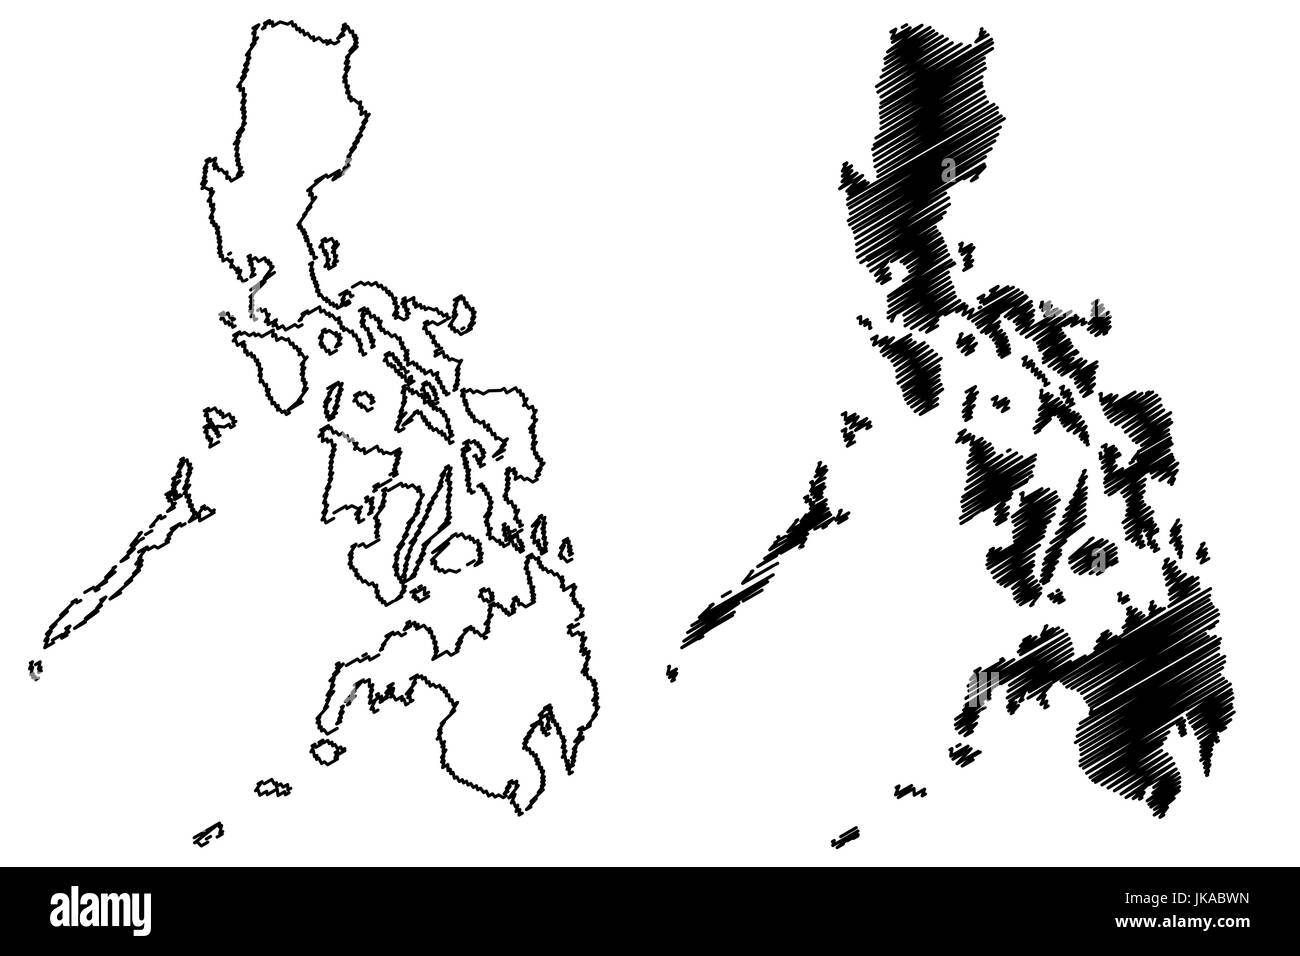 Philippines Map Black And White.The Philippines Map Black And White Stock Photos Images Alamy